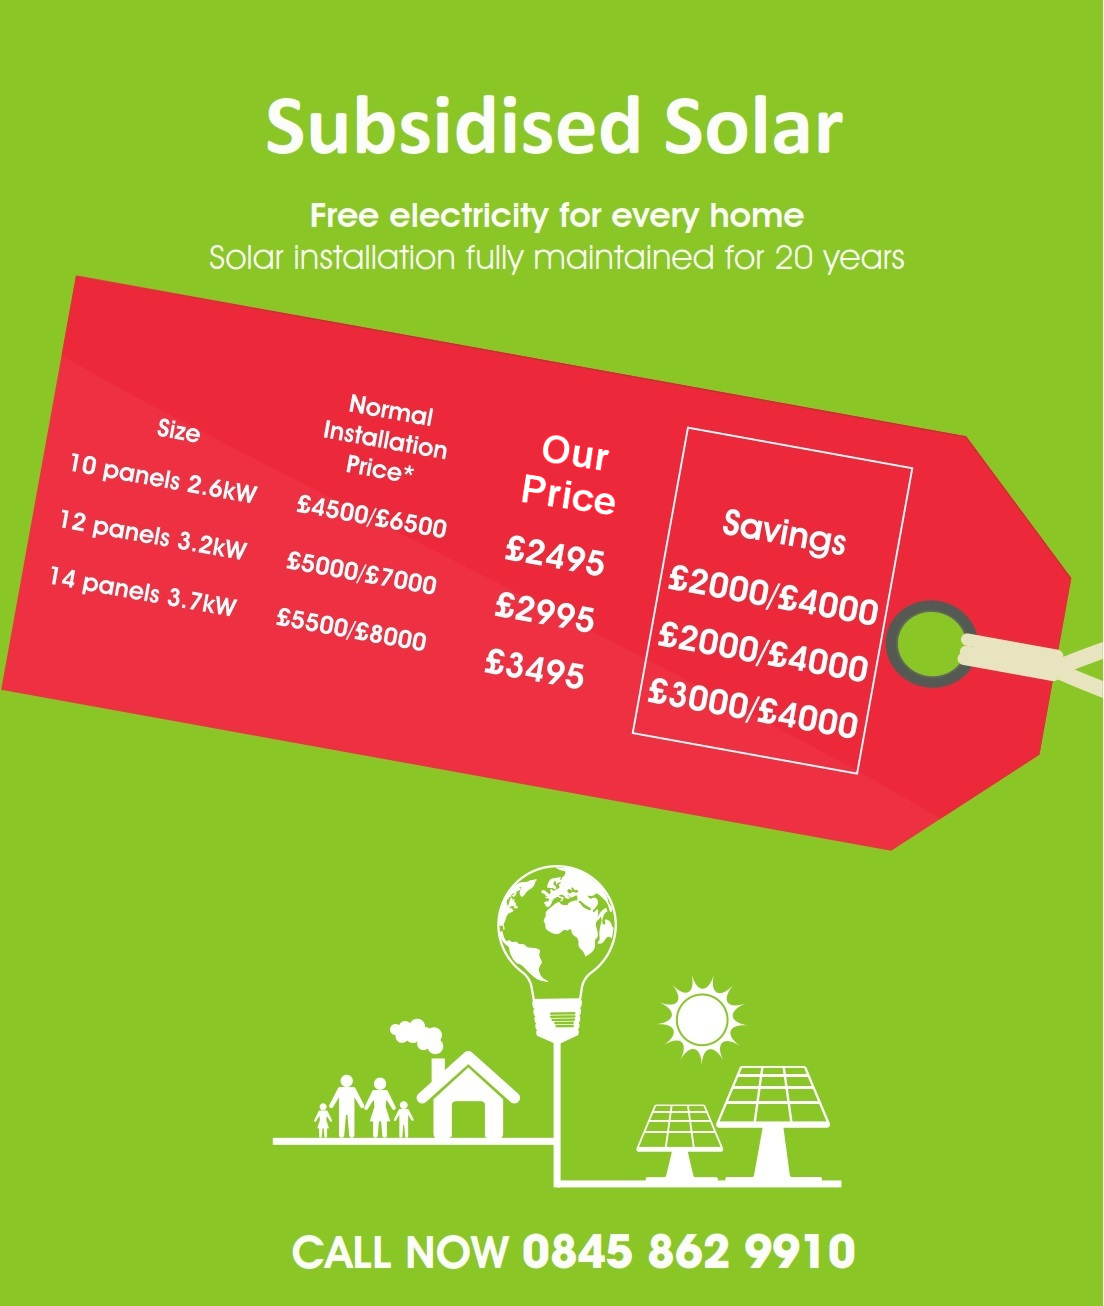 https://www.renewableenergyhub.co.uk/images/Subsidised-Solar.jpg